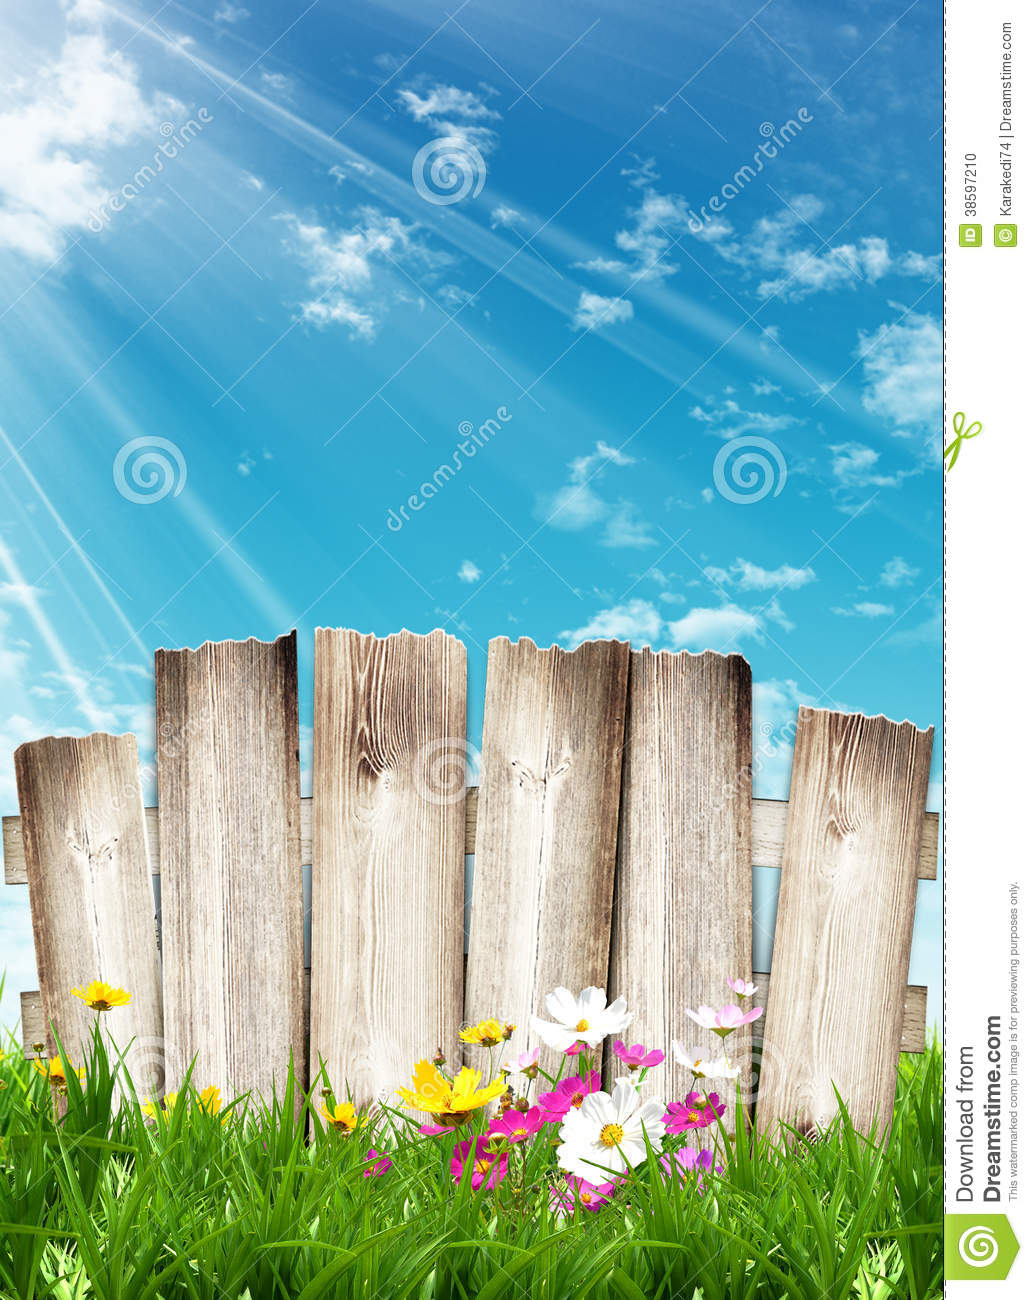 Wooden Fence And Spring Flowers